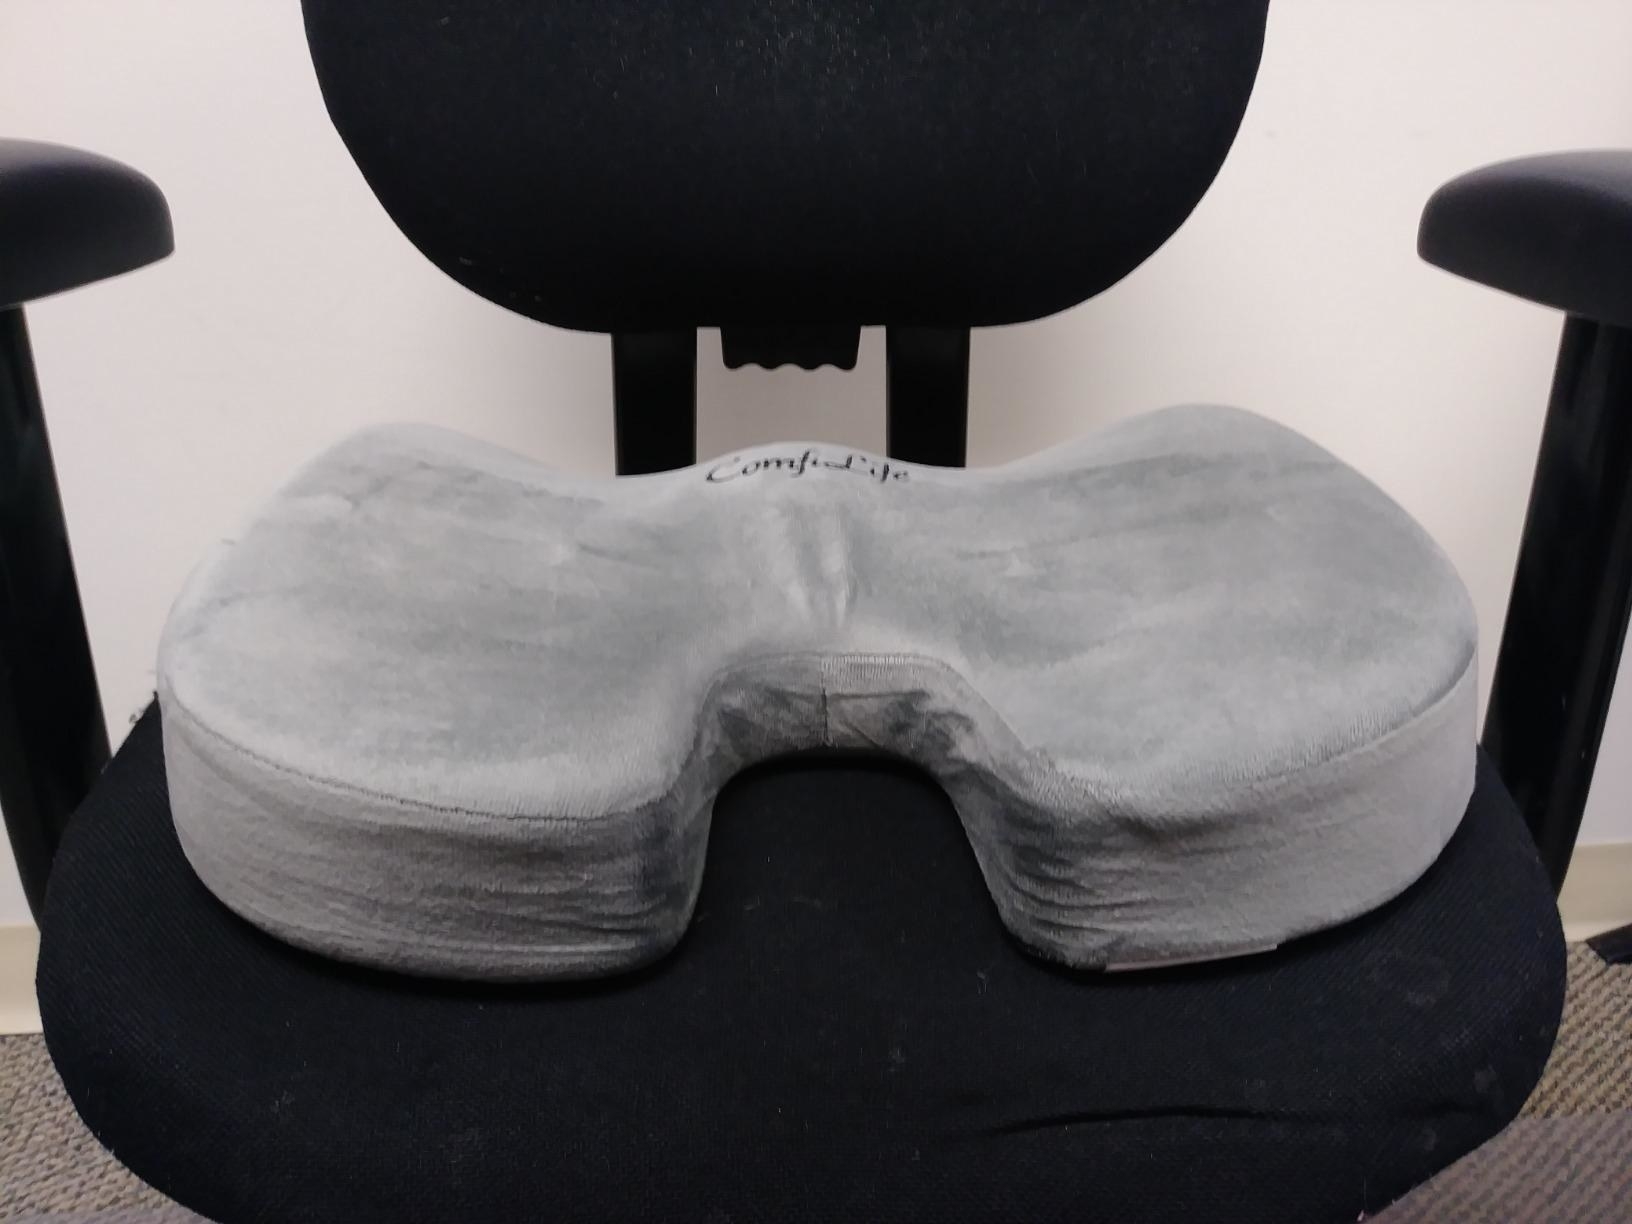 A gray memory foam seat cushion propped on an office chair